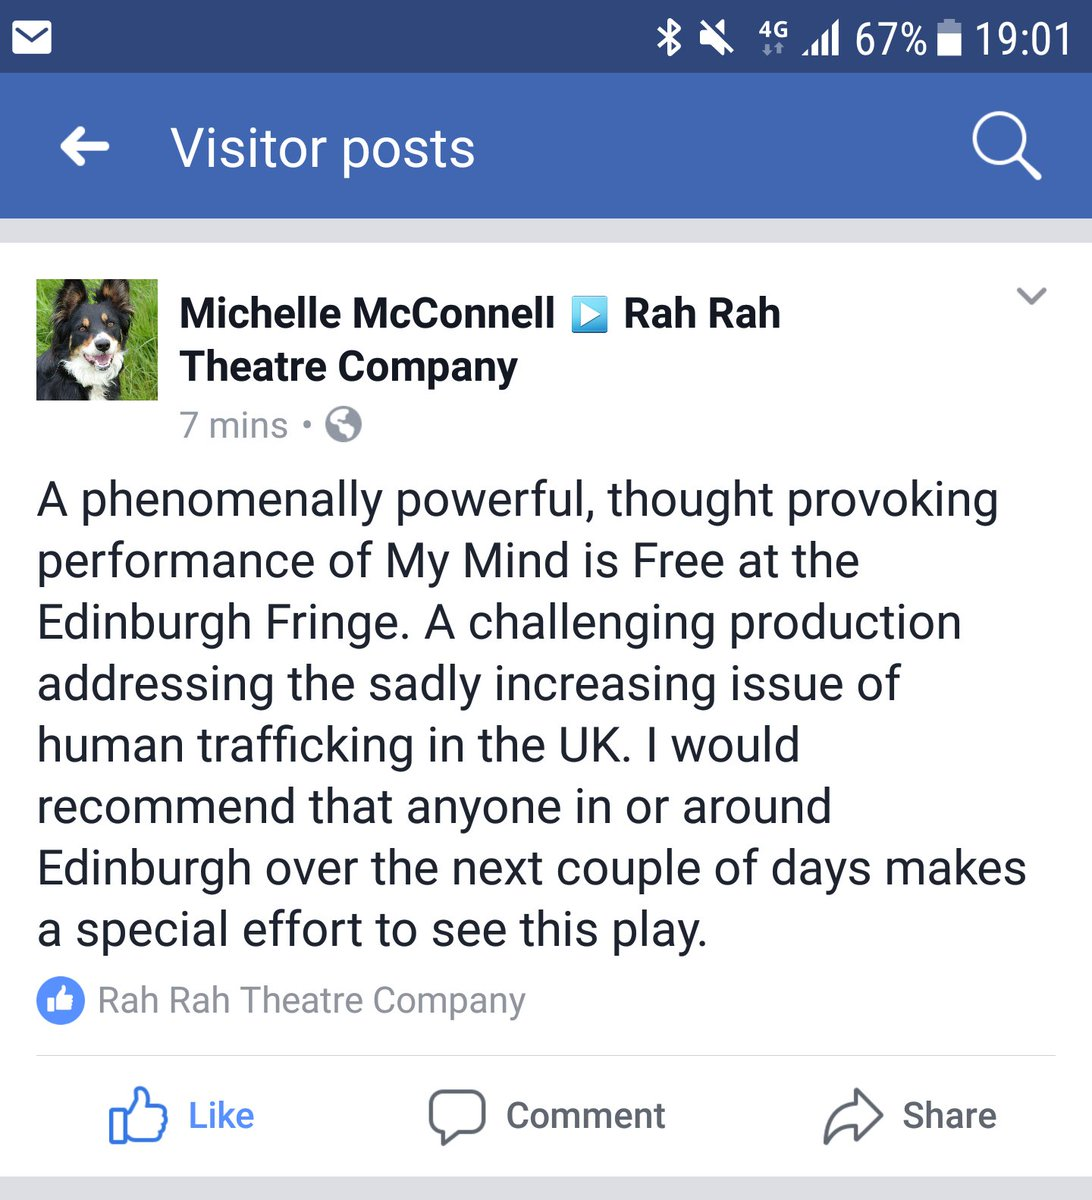 A great response from today's show. Only 2 shows left! #MyMindIsFree https://tickets.edfringe.com/whats-on/my-mind-is-free …